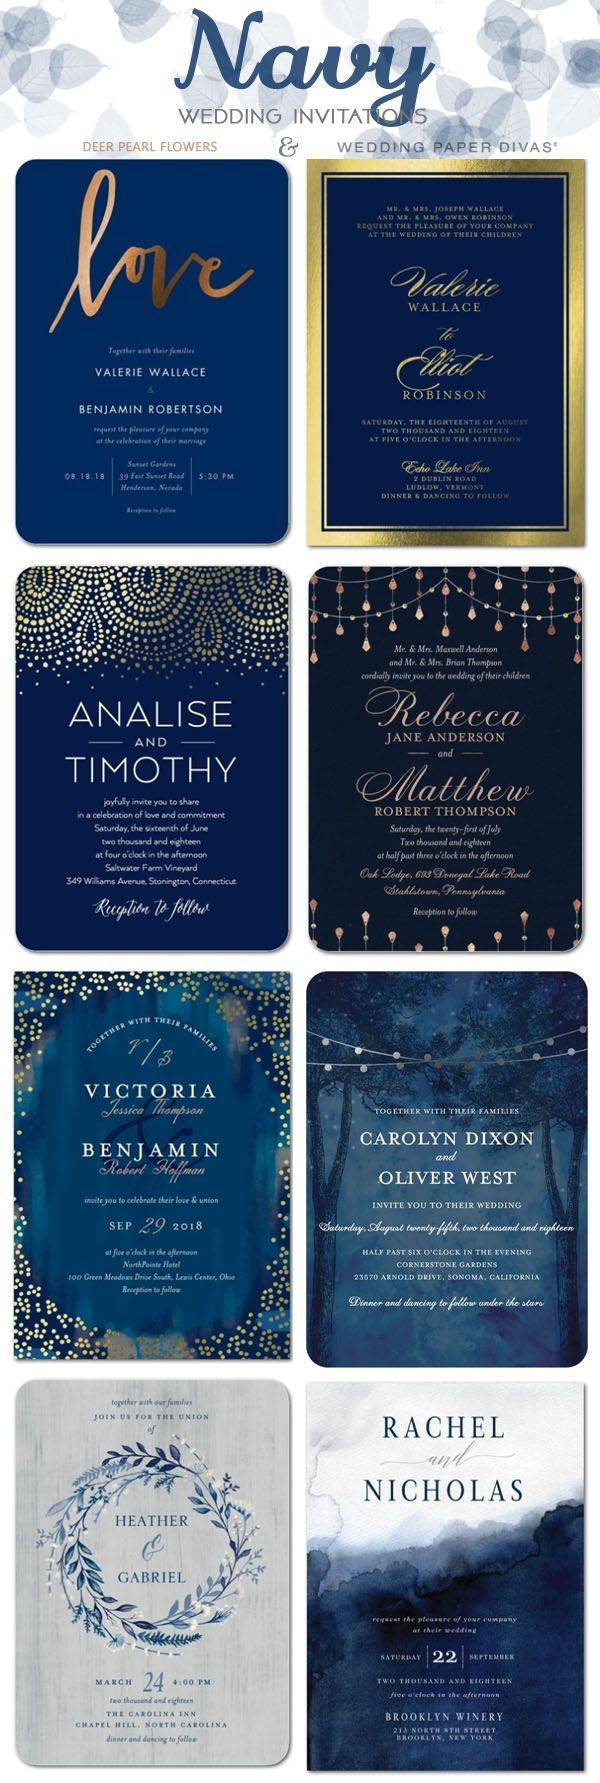 Navy blue wedding color ideas - navy blue wedding invitations / http://www.deerpearlflowers.com/wedding-paper-divas-wedding-invitations/2/